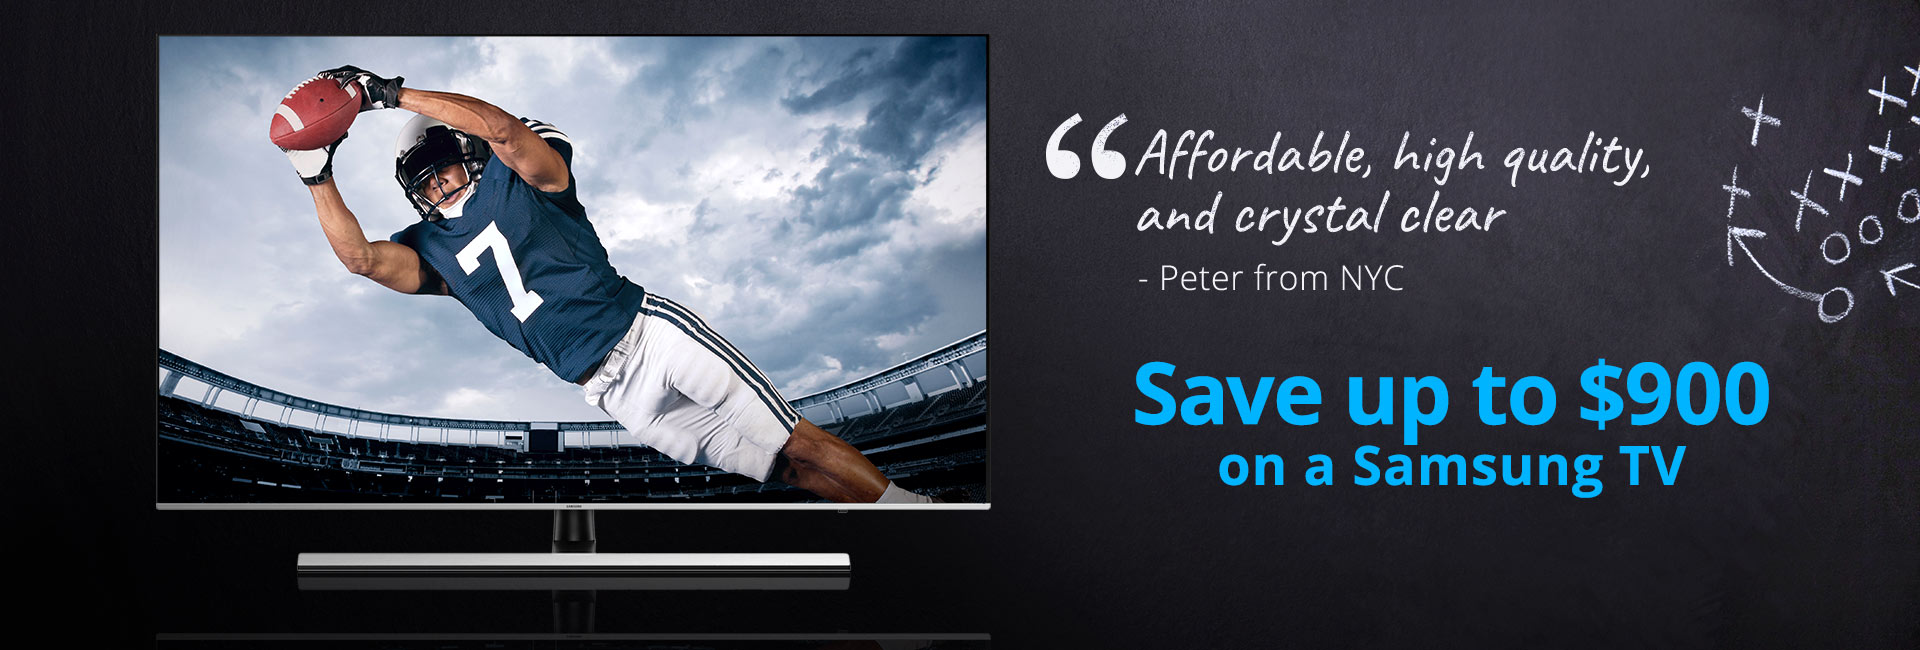 Save up to $900 on a Samsung TV